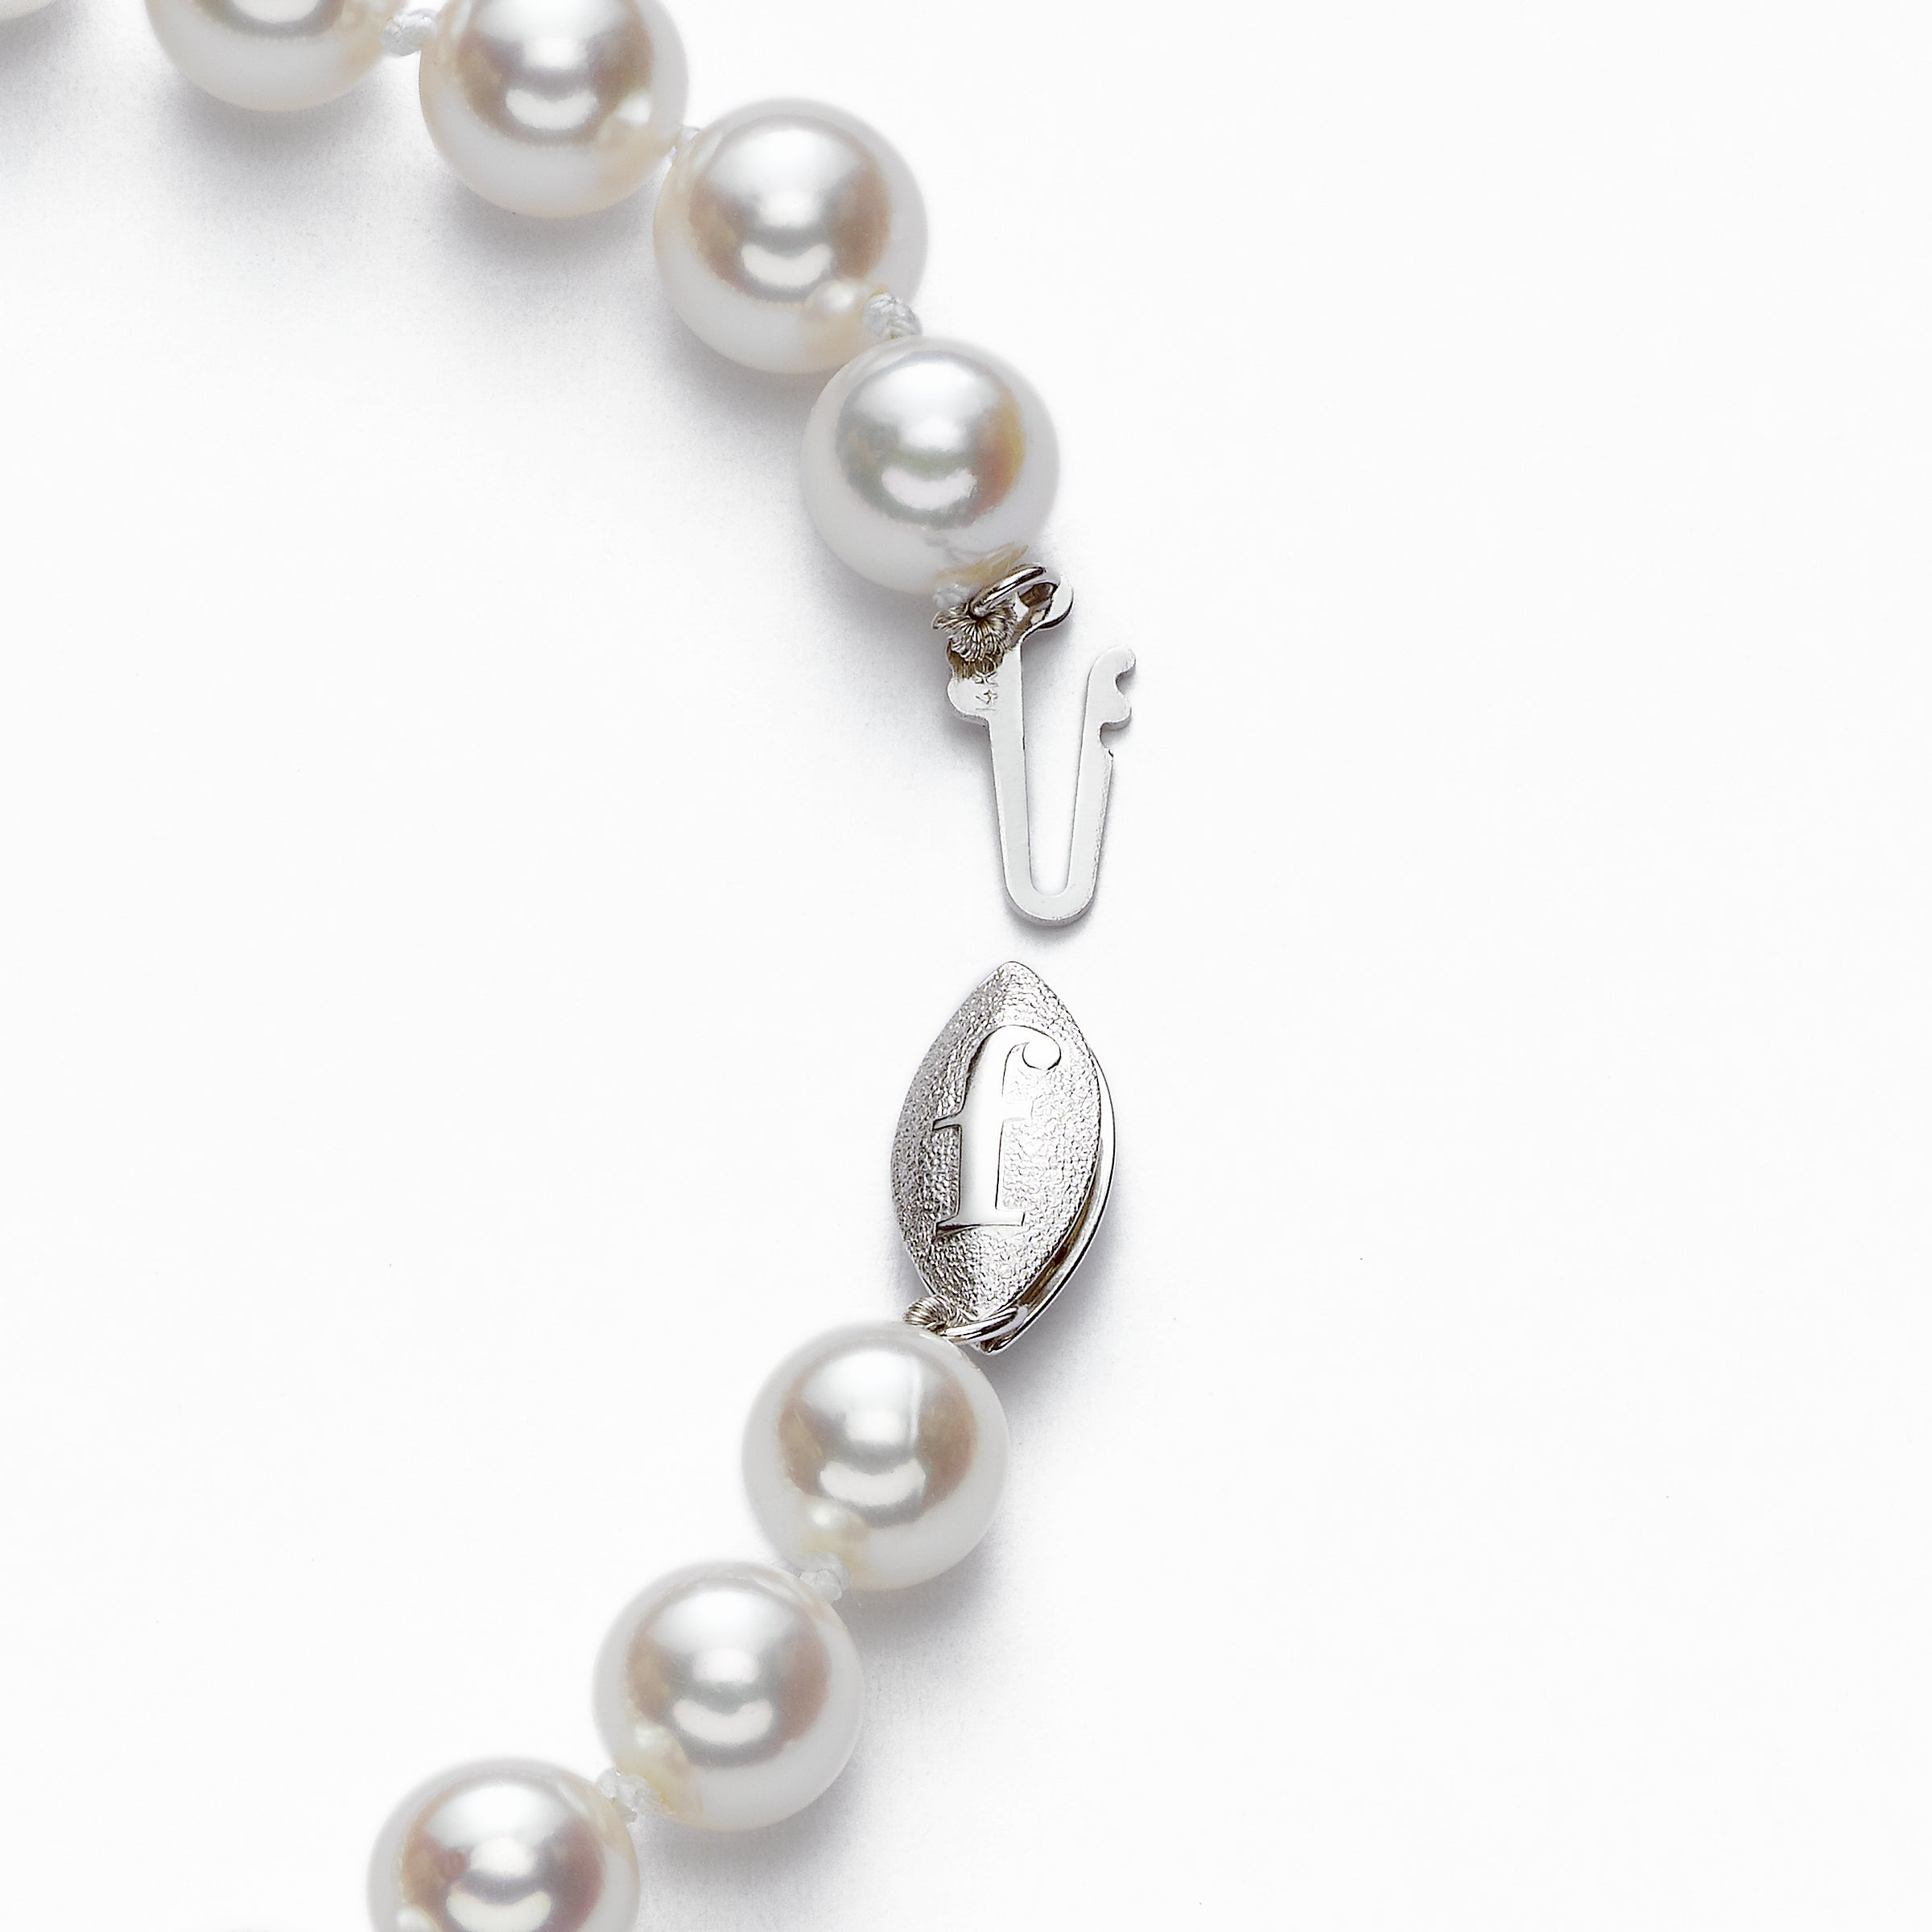 Japanese 'Akoya' Saltwater Cultured Pearl Bracelet, 7.5 x 7 MM, 14K